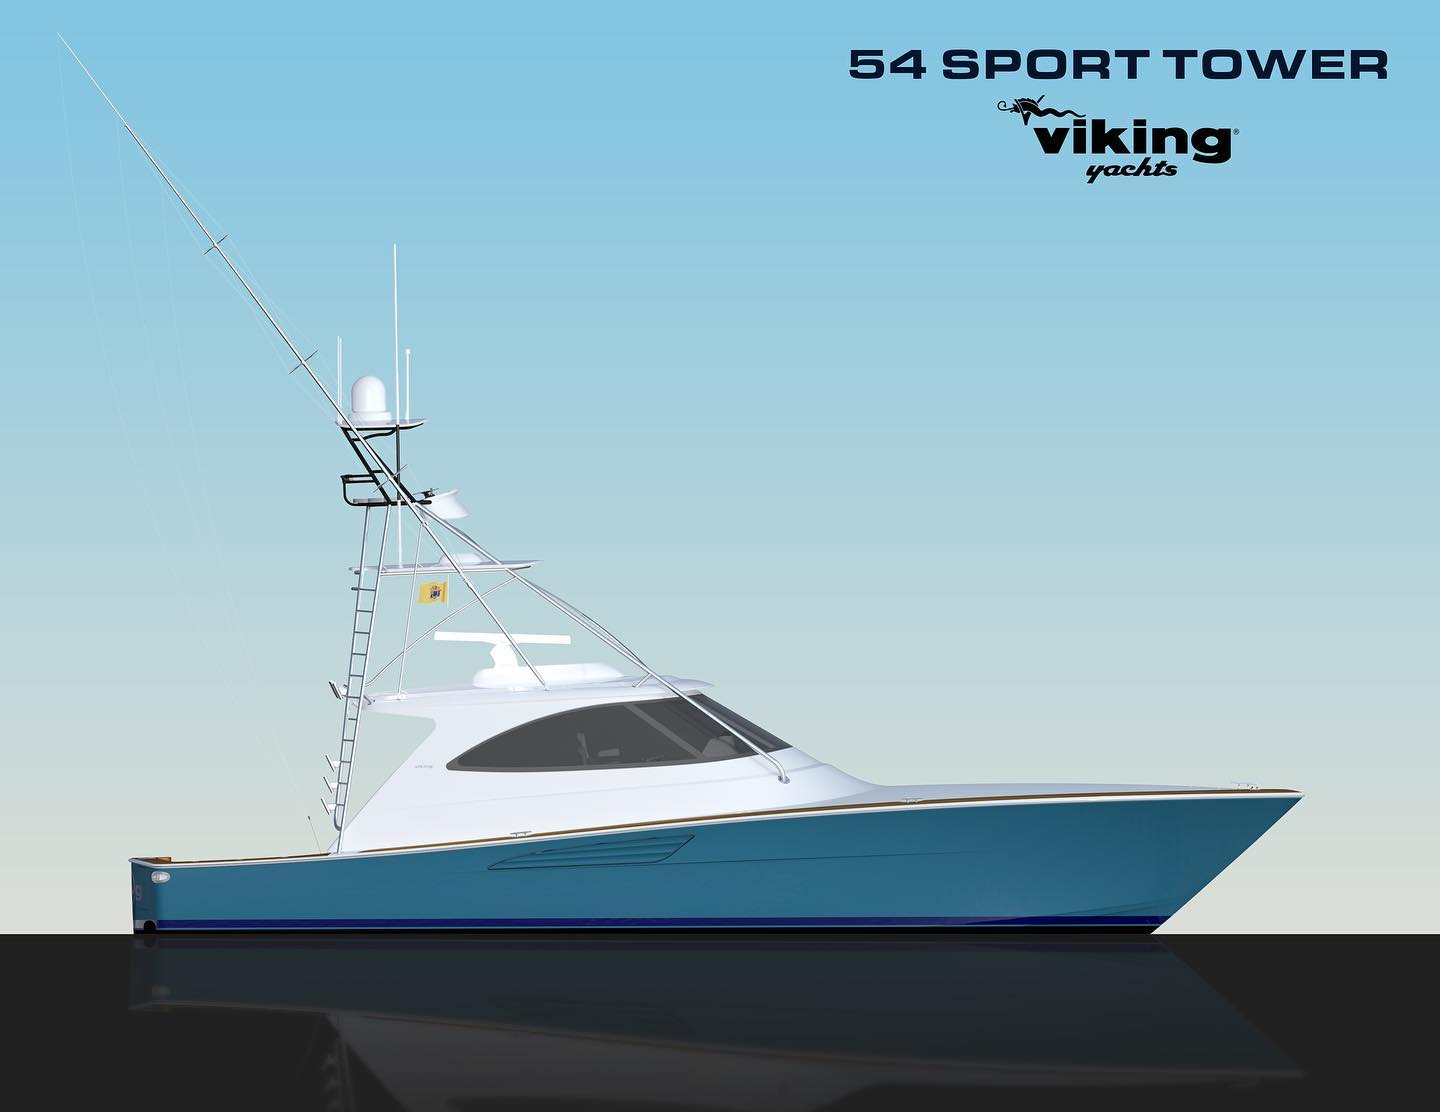 New Viking Yachts 54 Sport Tower